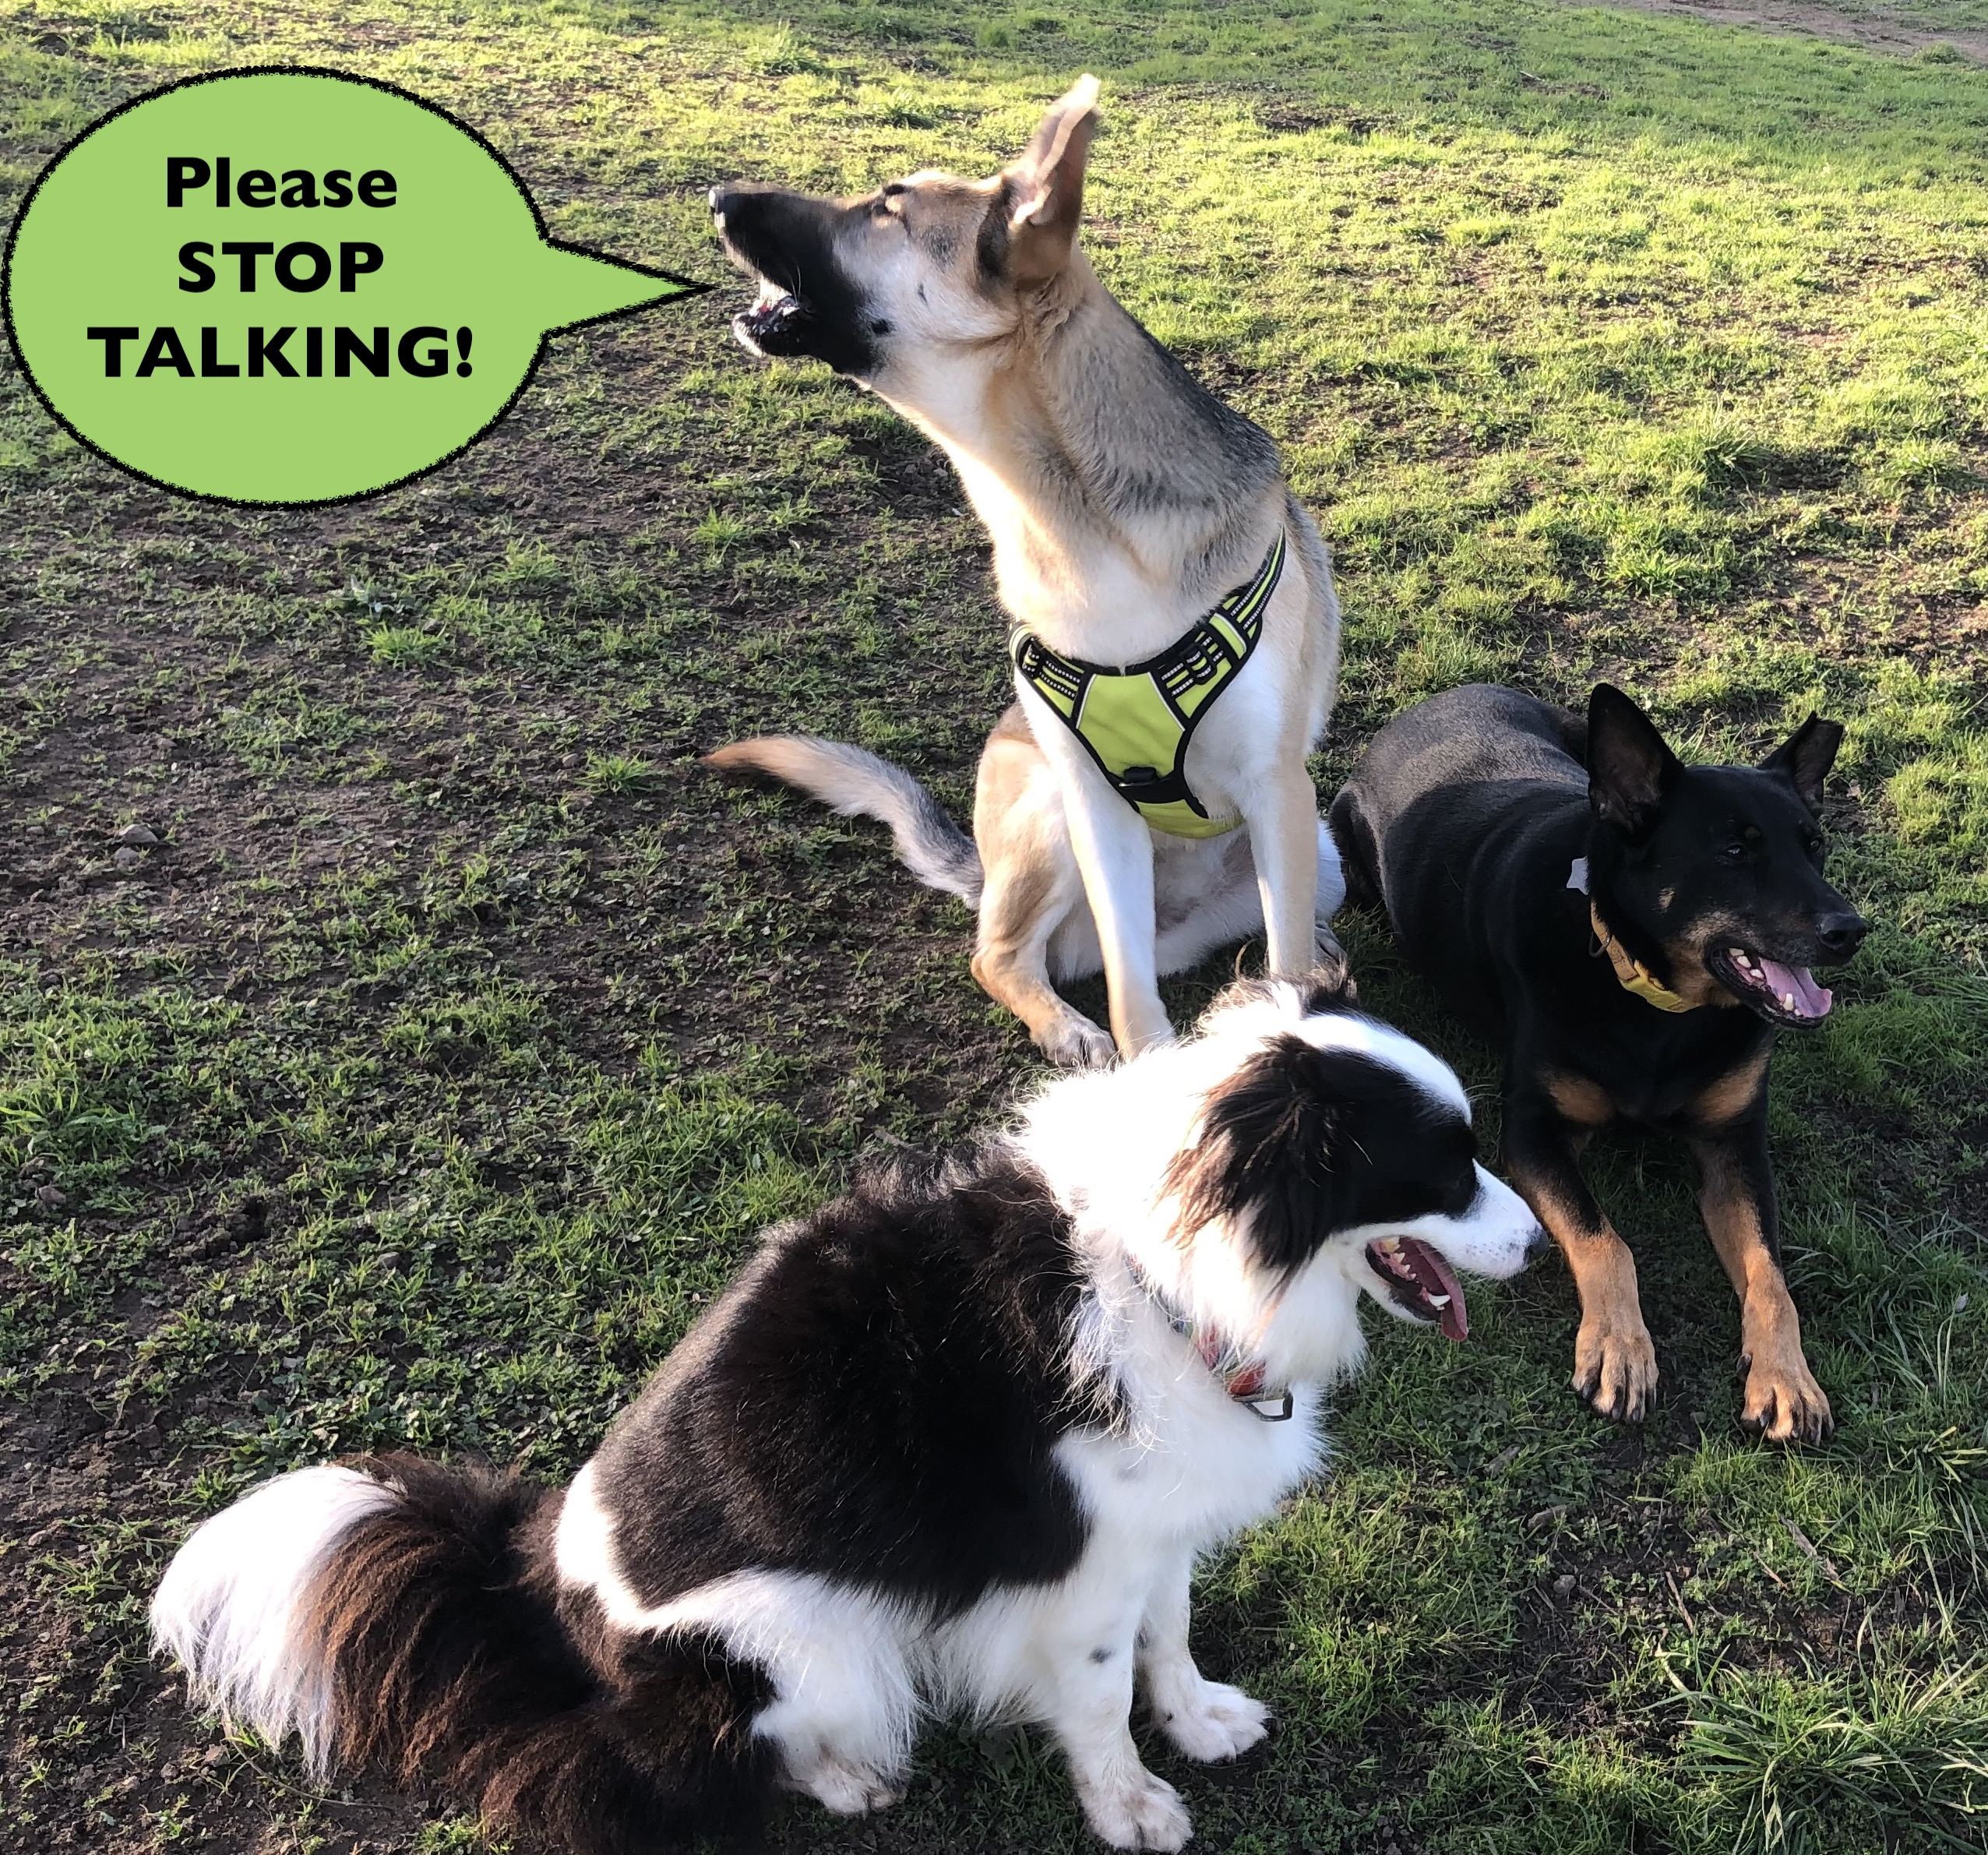 Three dogs playing in a field with one asking the humans to 'Please STOP TALKING!'